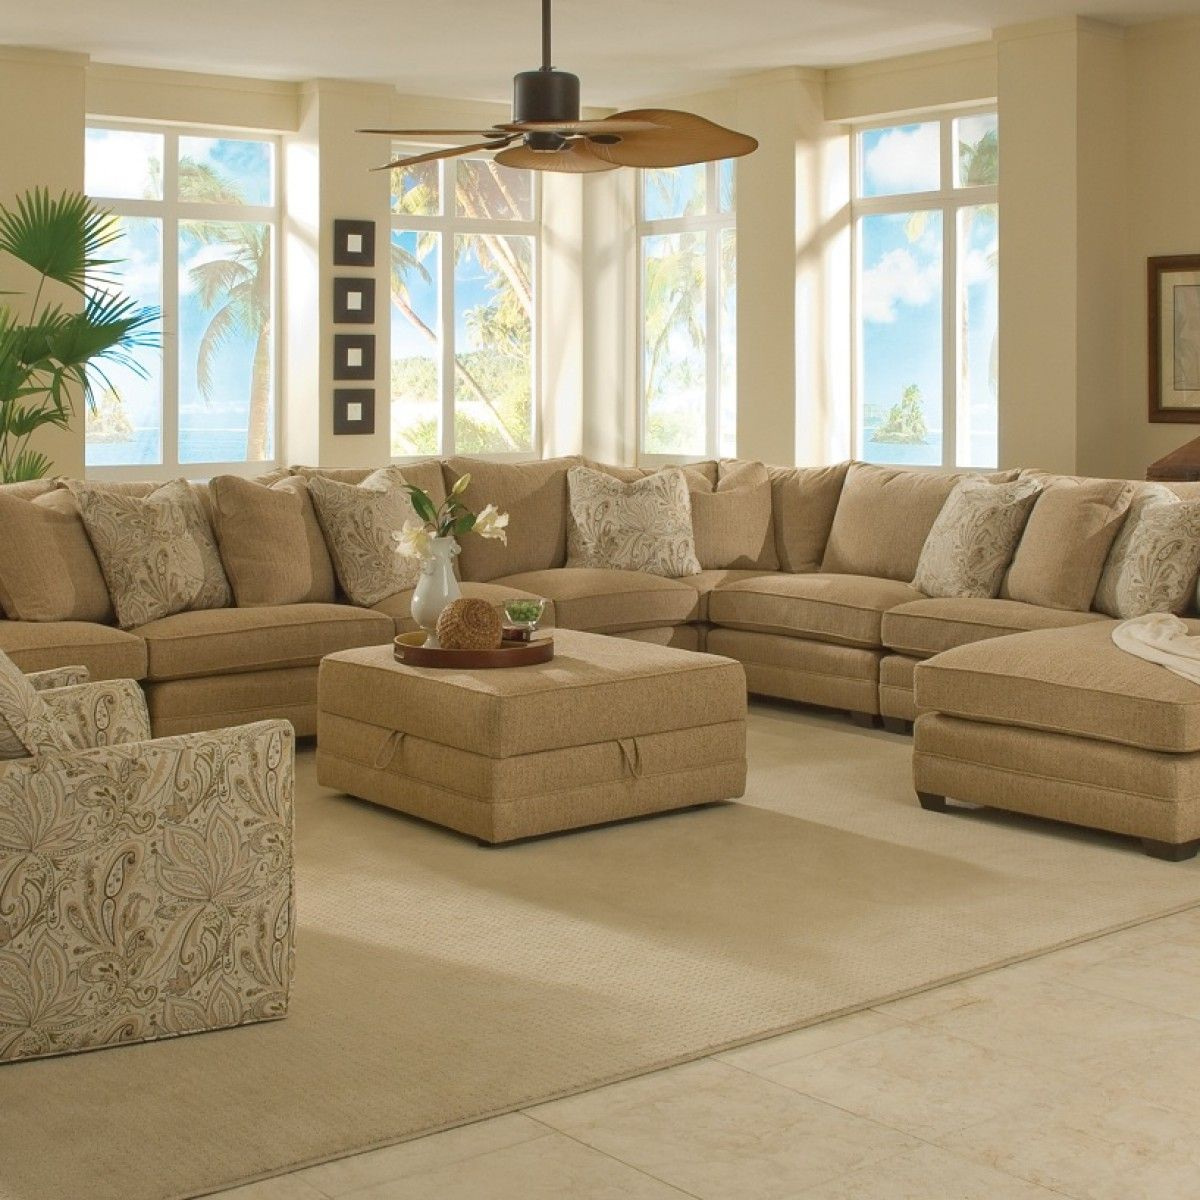 magnificent large sectional sofas family room On large living room sofas